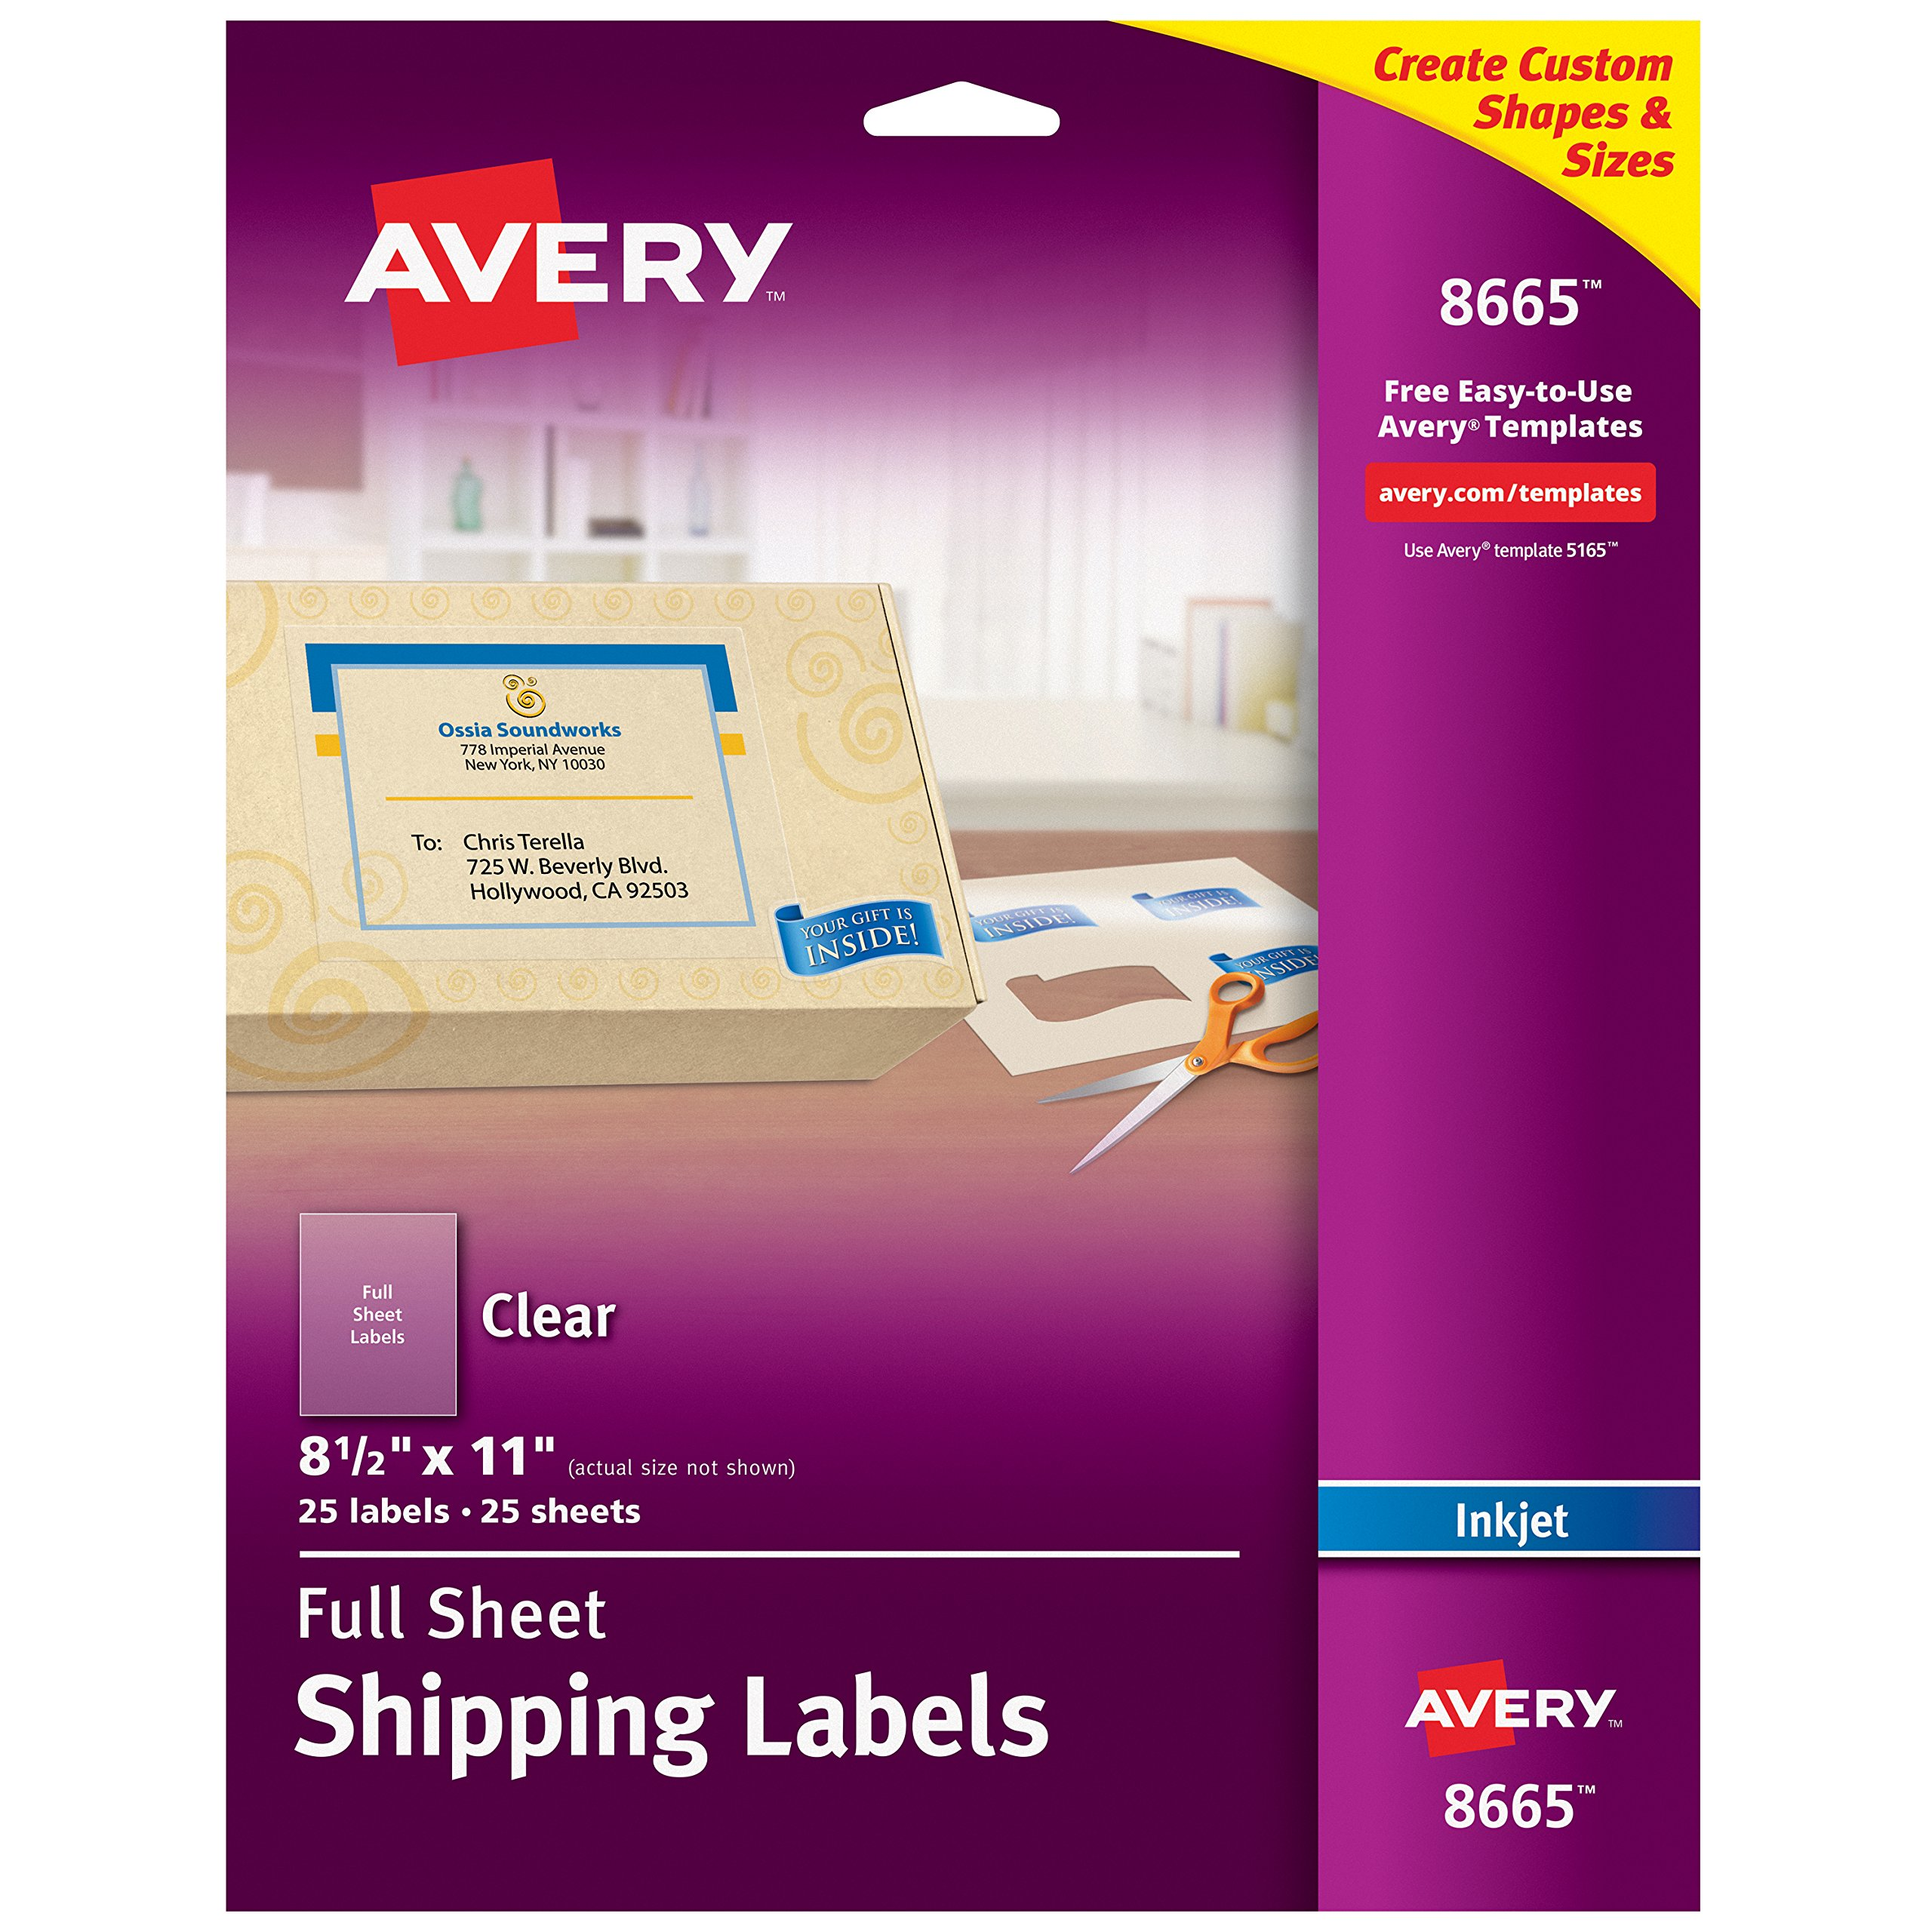 Avery Matte Frosted Clear Full Sheet Labels for Inkjet Printers, 8.5'' x 11'', 25 Labels (8665)